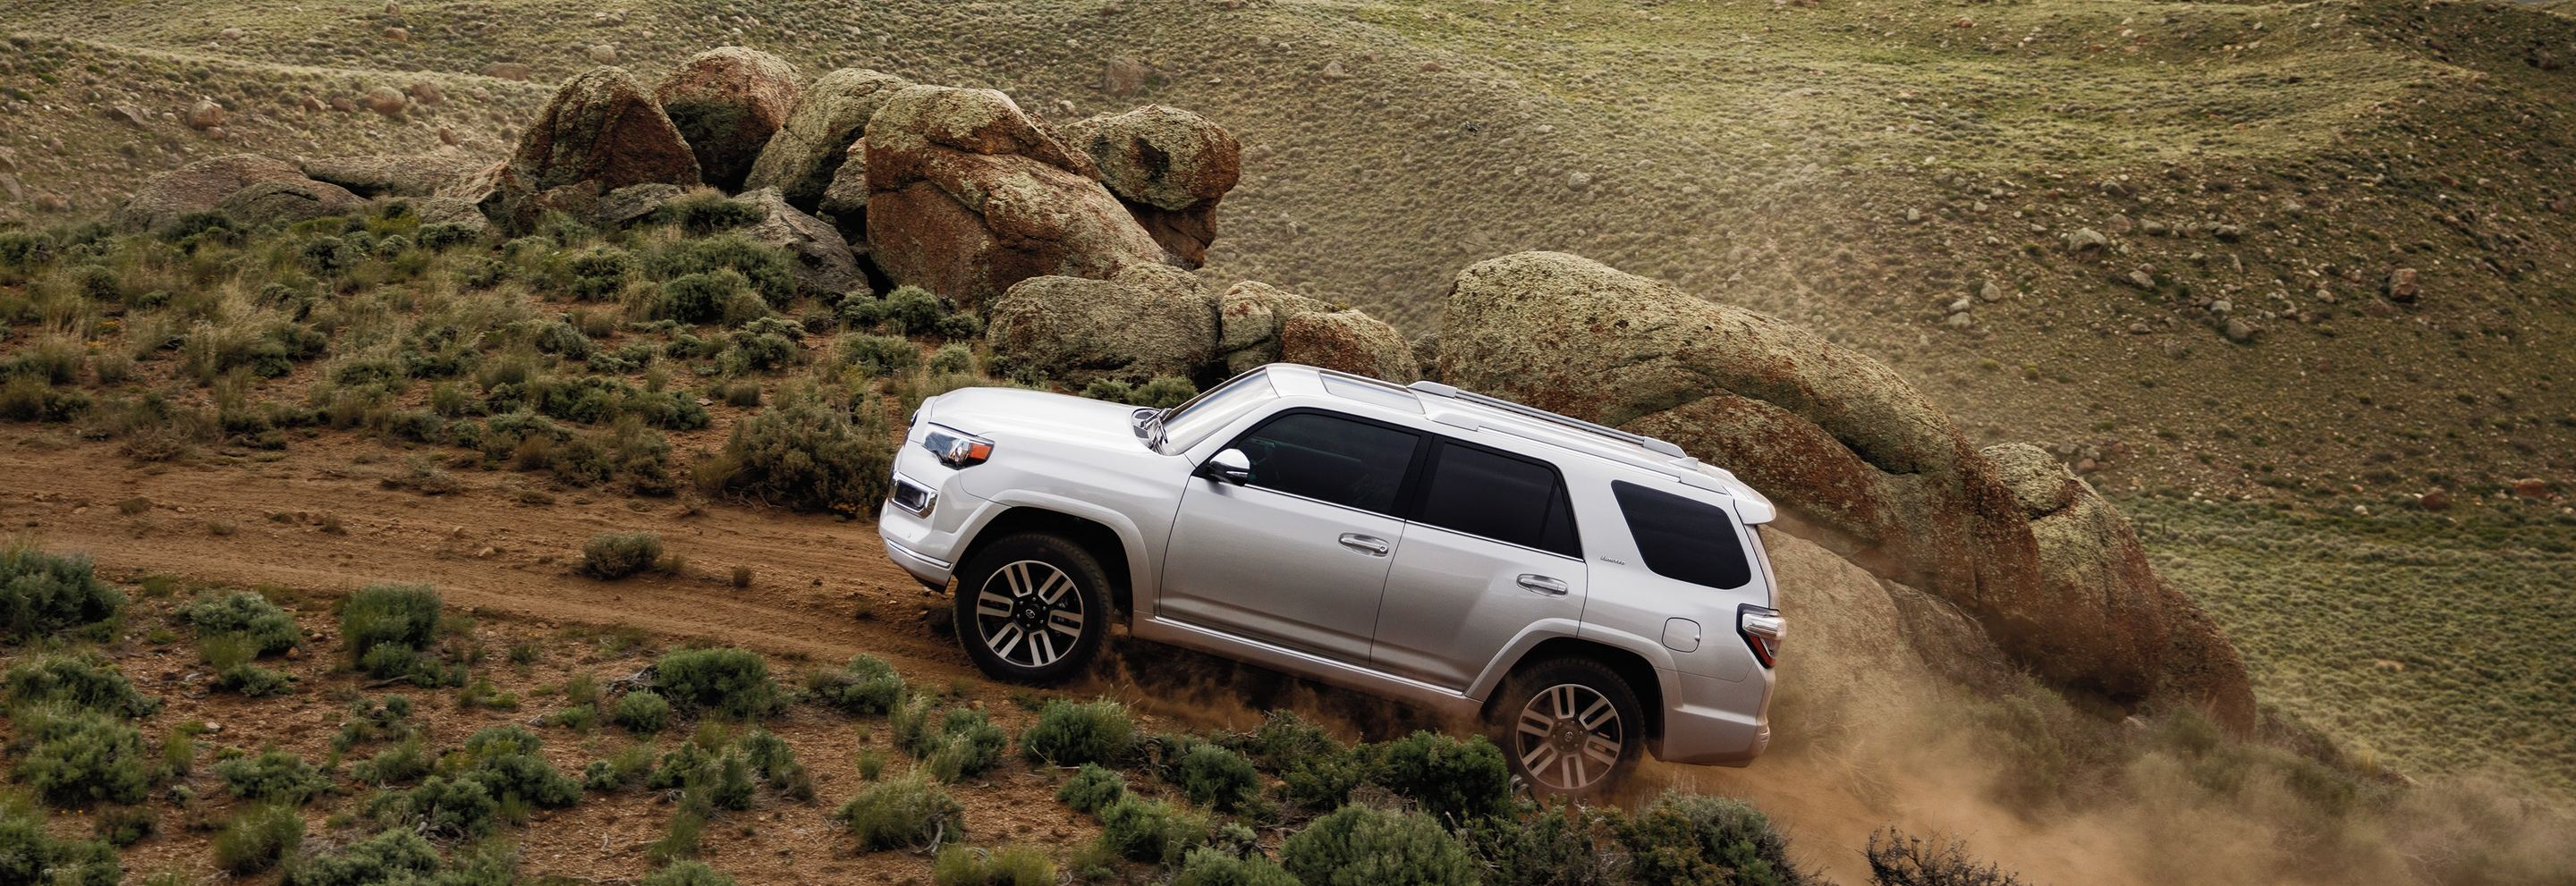 2020 Toyota 4Runner Lease near Leawood, KS, 64804